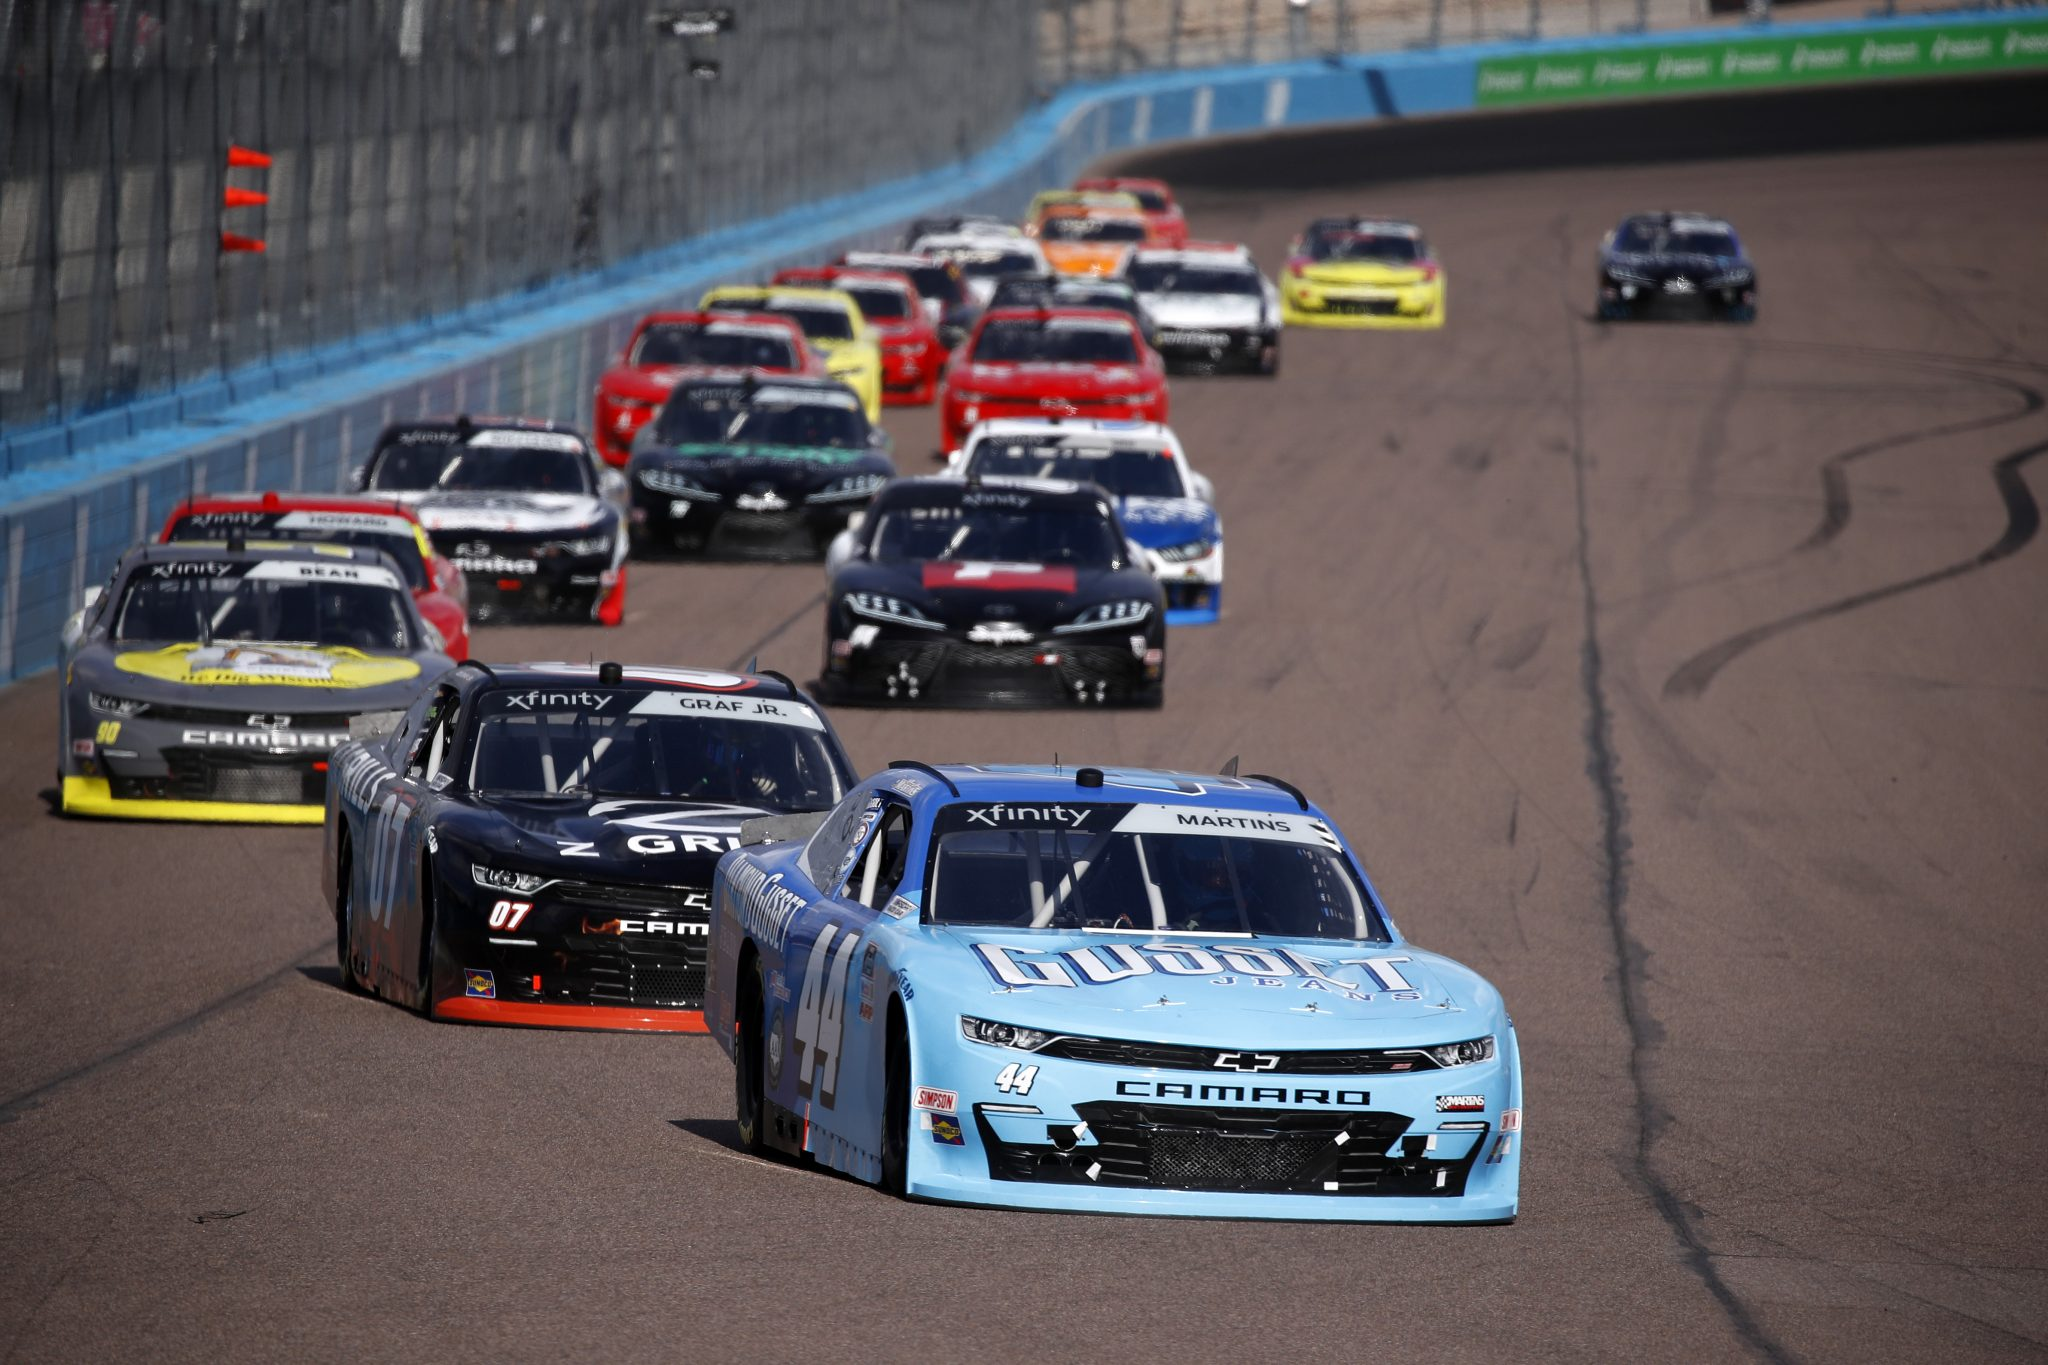 AVONDALE, ARIZONA - MARCH 13: Tommy Joe Martins, driver of the #44 Diamon Gusset Jeans Chevrolet, leads the field during the NASCAR Xfinity Series Call 811 Before You Dig 200 presented by Arizona 811 at Phoenix Raceway on March 13, 2021 in Avondale, Arizona. (Photo by Christian Petersen/Getty Images) | Getty Images